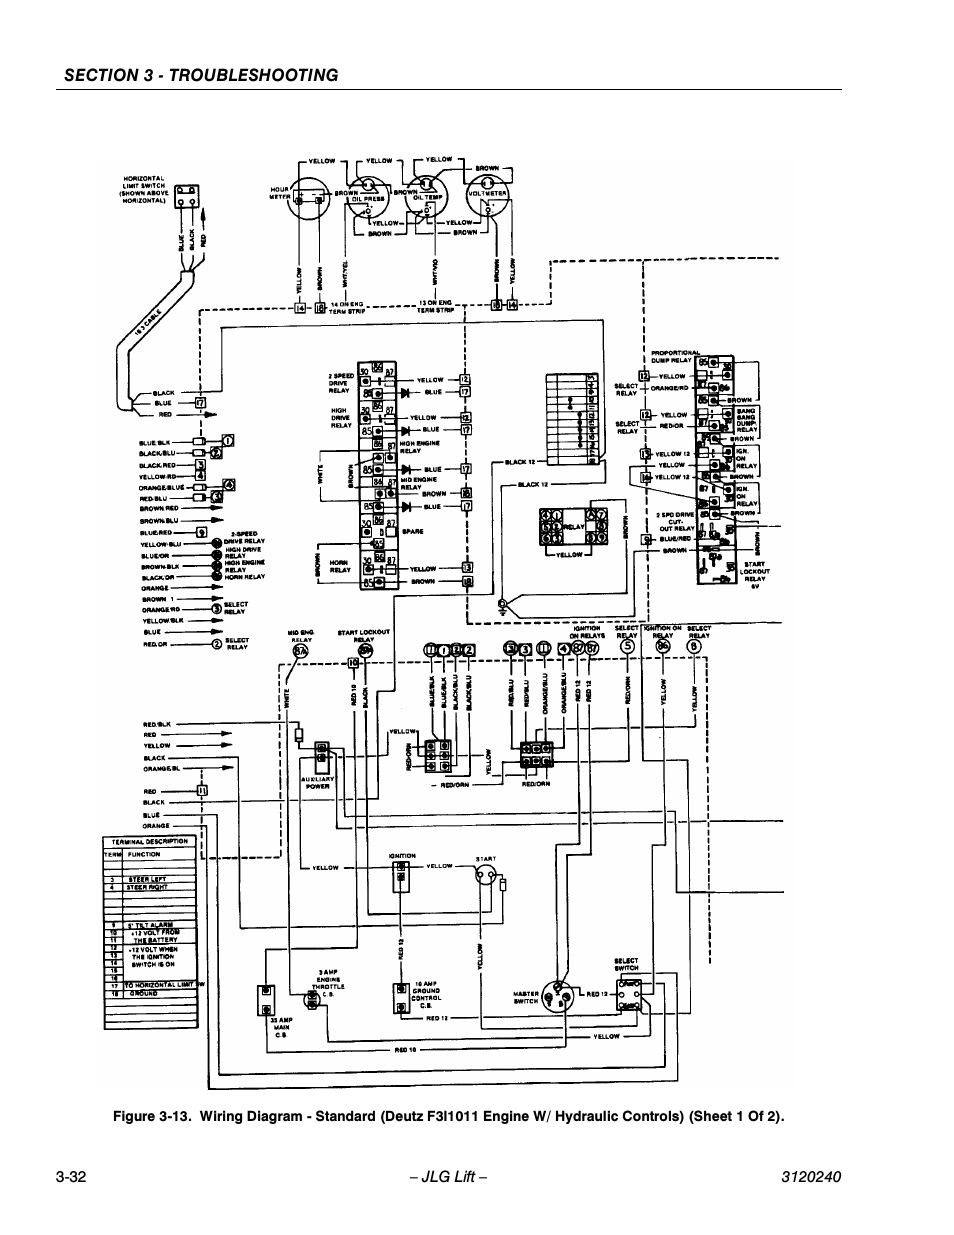 elevator wiring diagram pdf Collection-Deutz Wiring Diagram New Generous Jlg Scissor Lift Control Box Wire Electrical 2-m